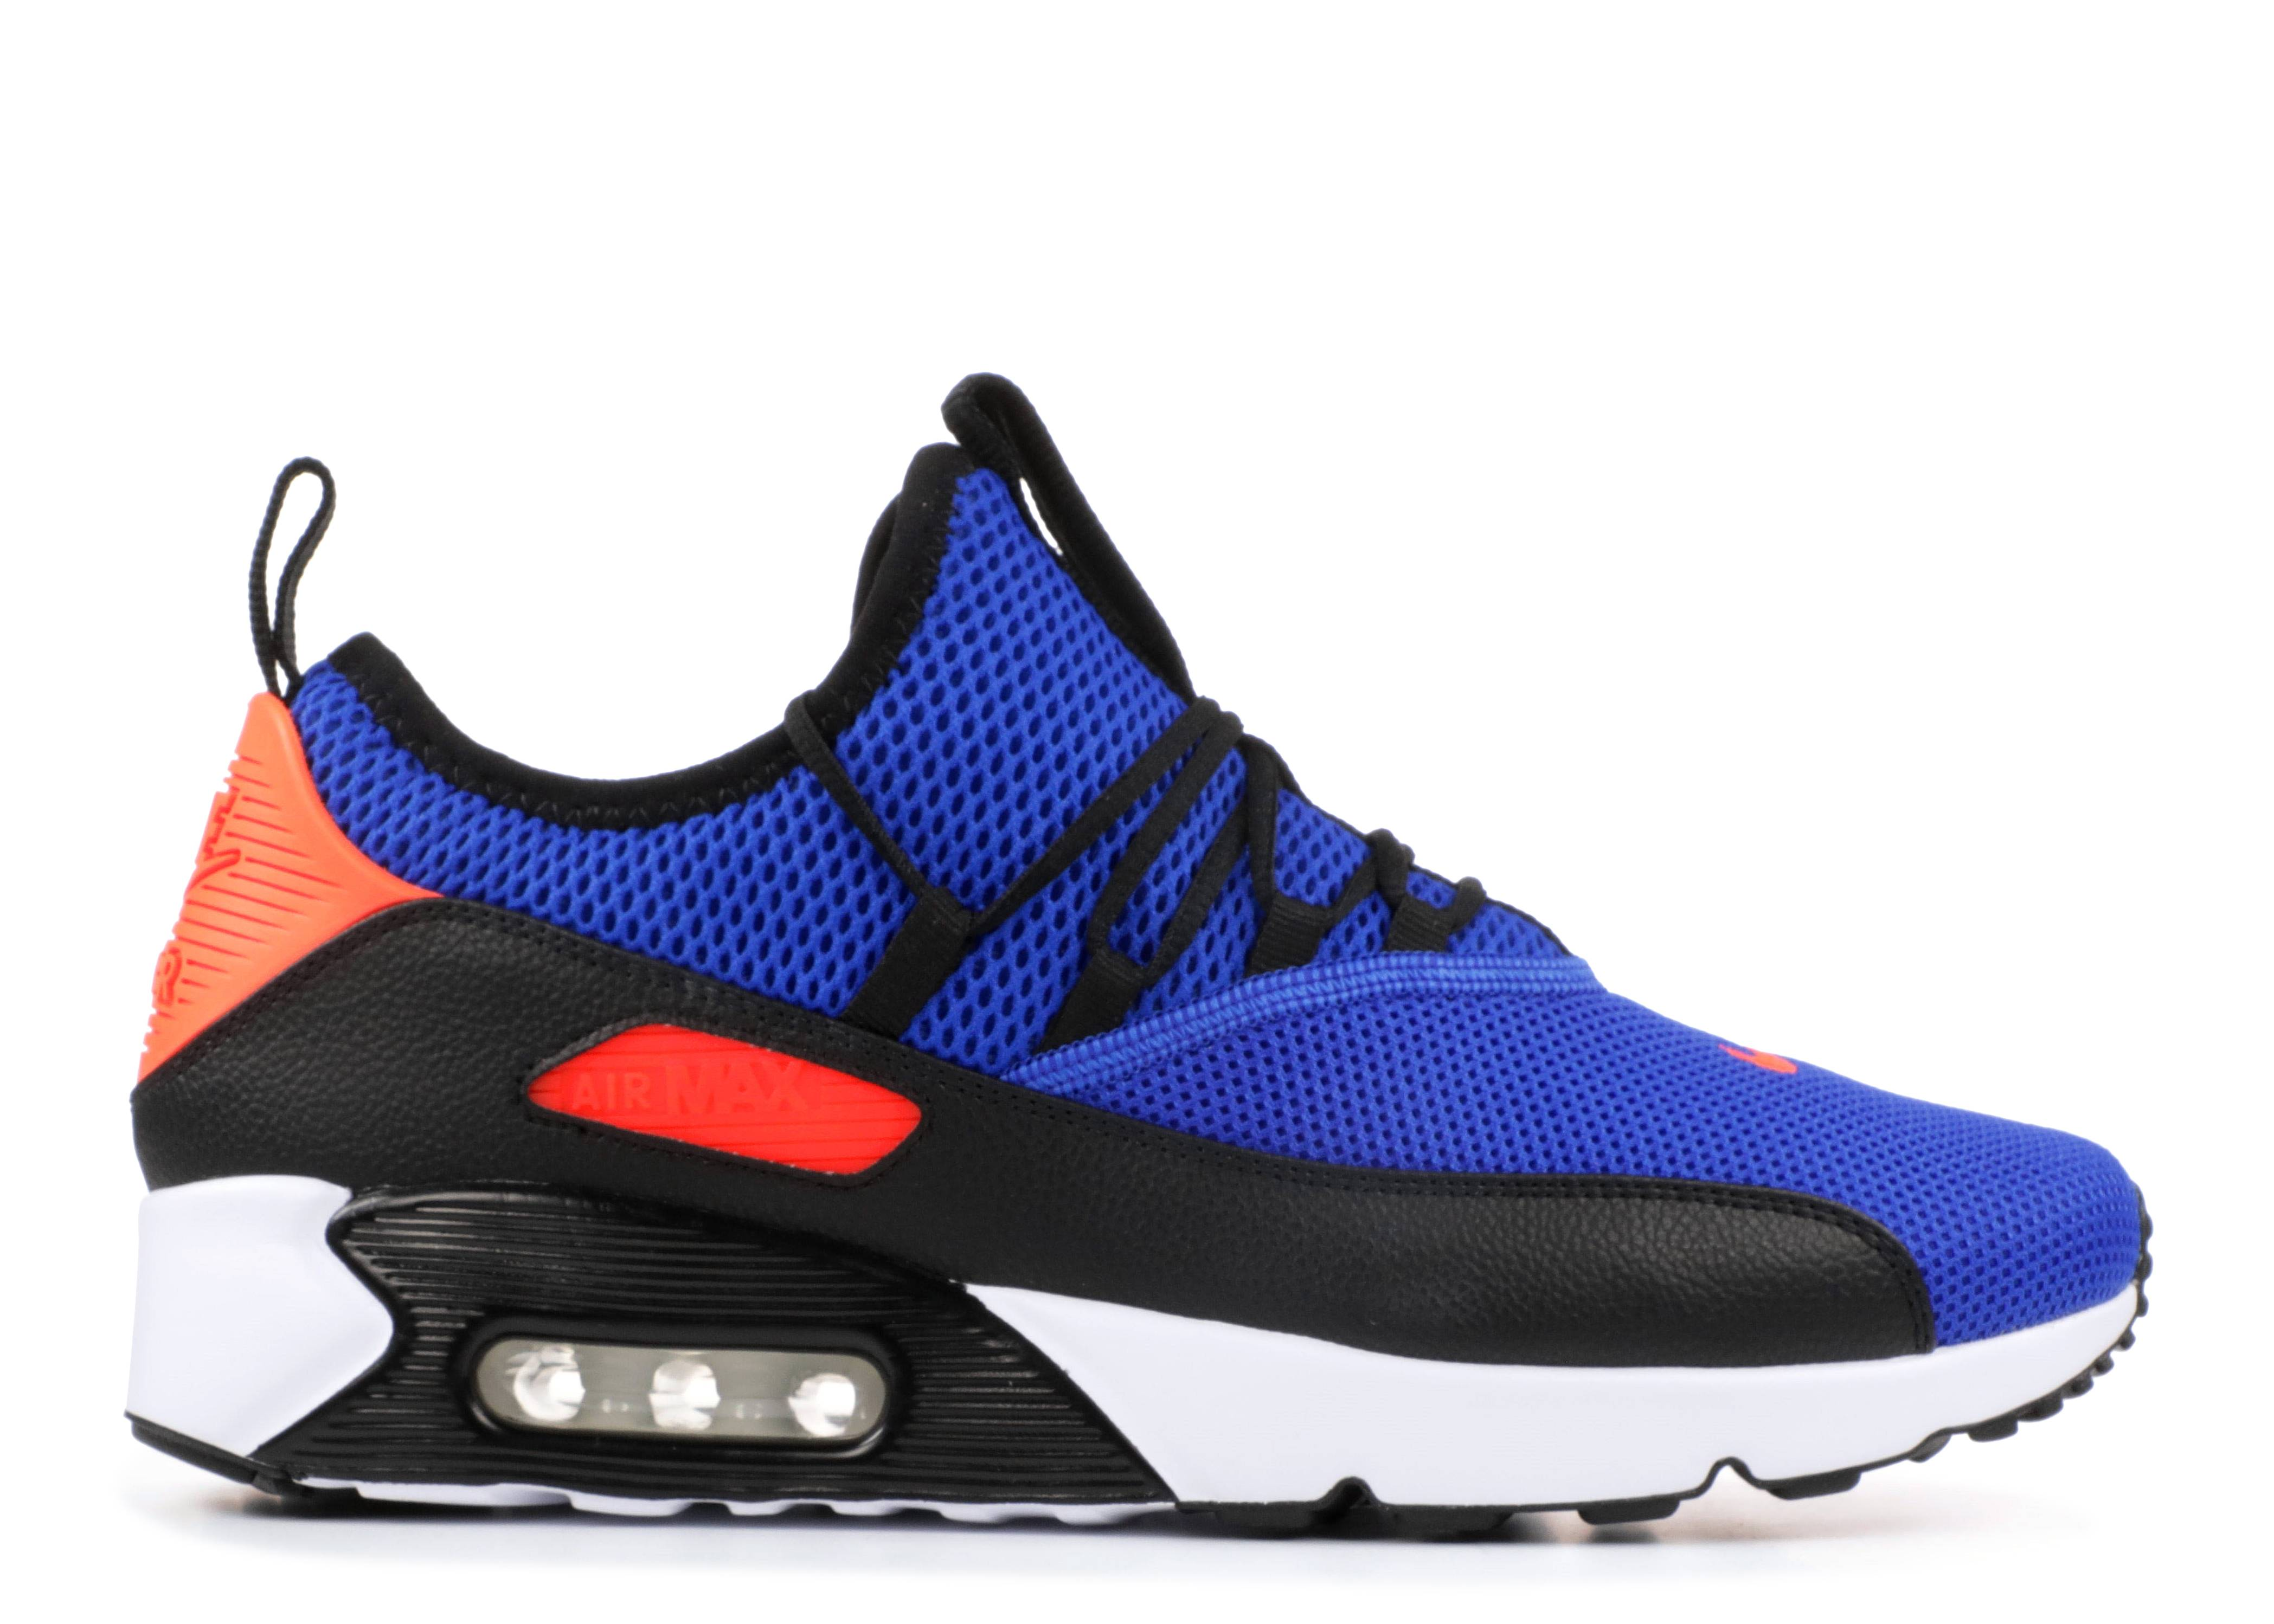 lower price with 9b26f c398a nike. air max 90 ez